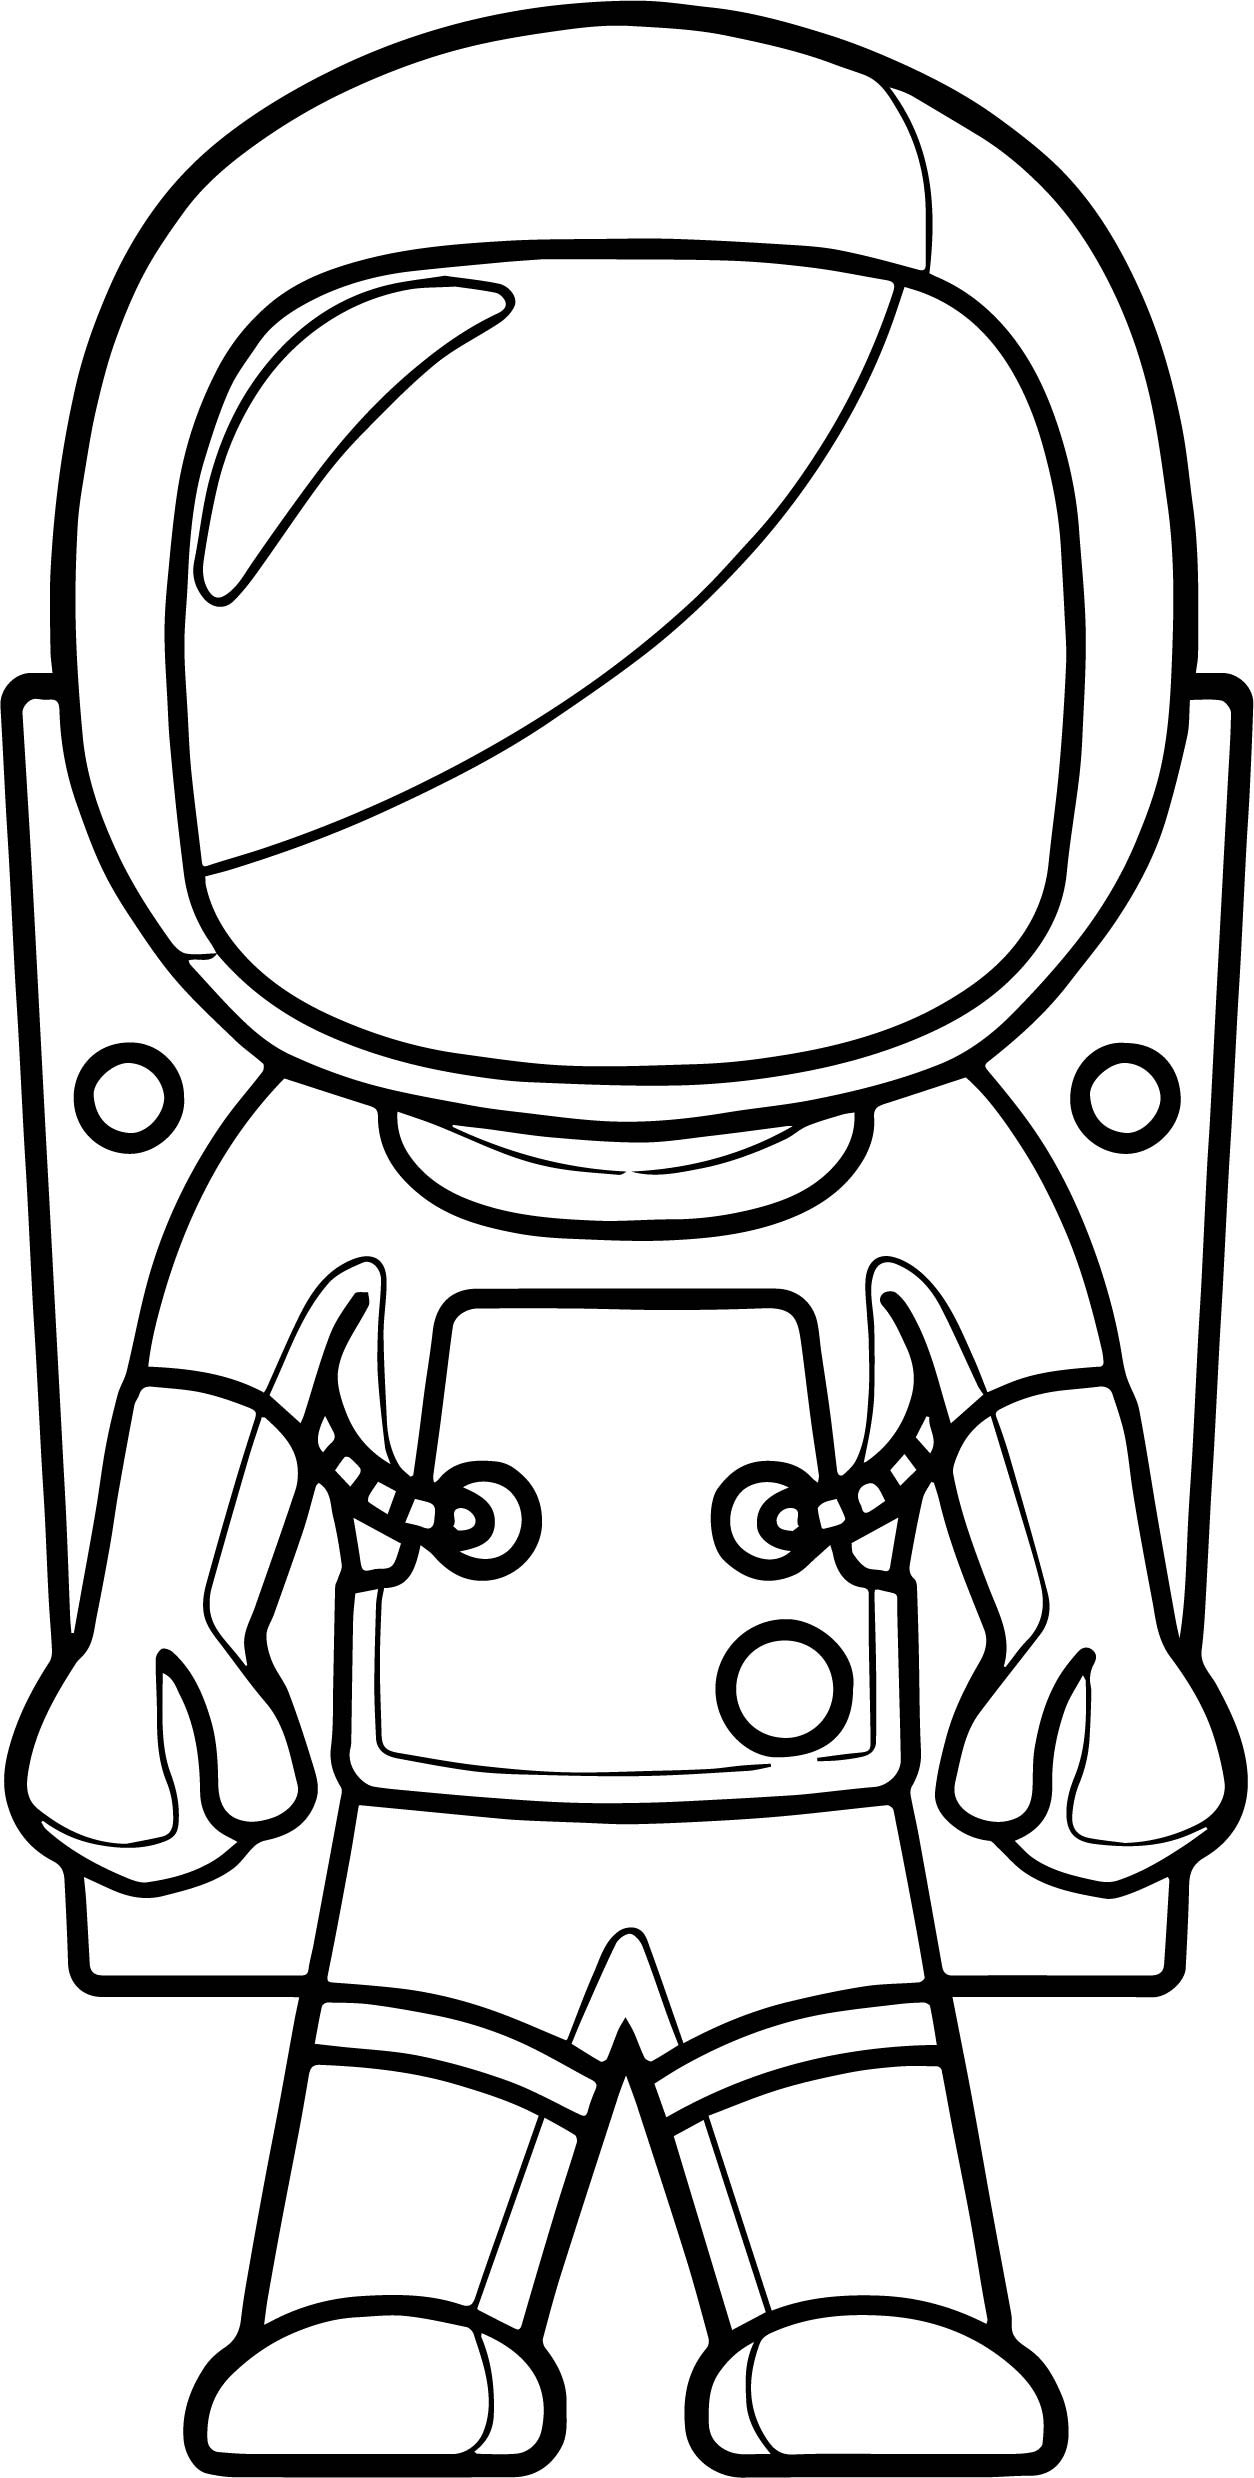 astronaut body coloring page spaceship kids coloring page illustrations royalty free coloring body astronaut page